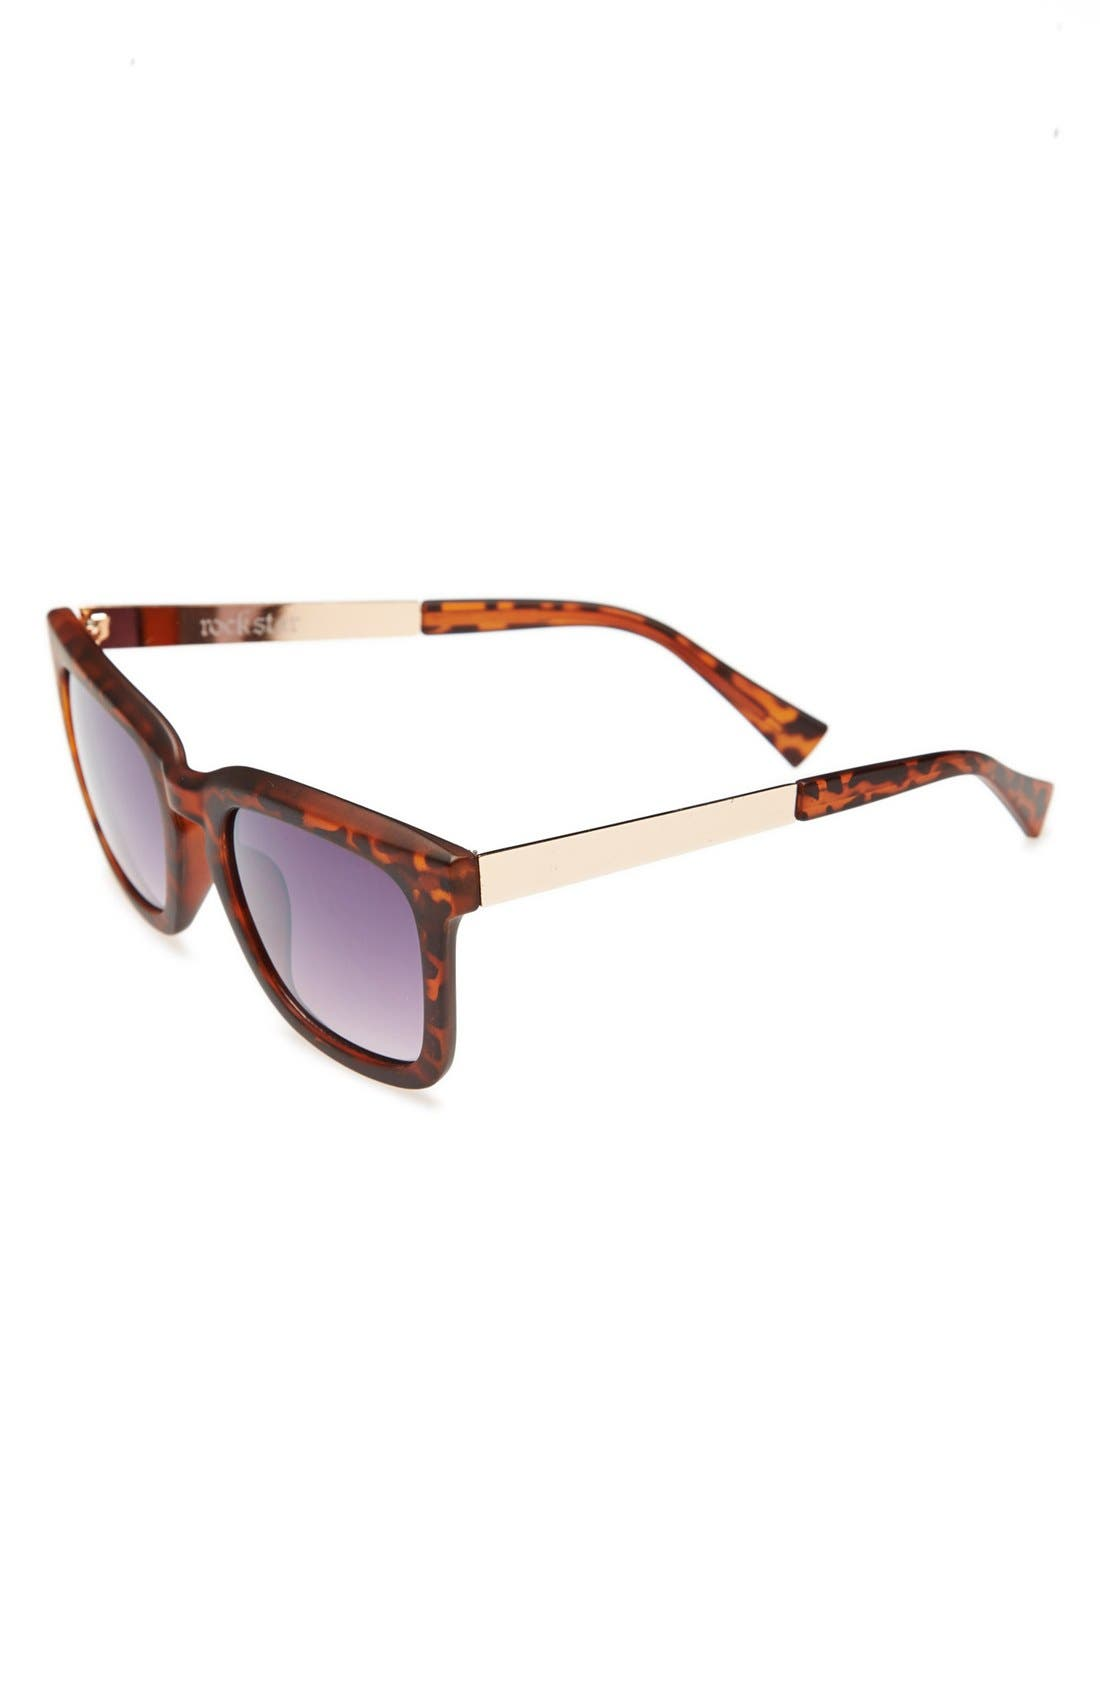 Alternate Image 1 Selected - BP. Oversized Tortoise Shell Sunglasses (Juniors)